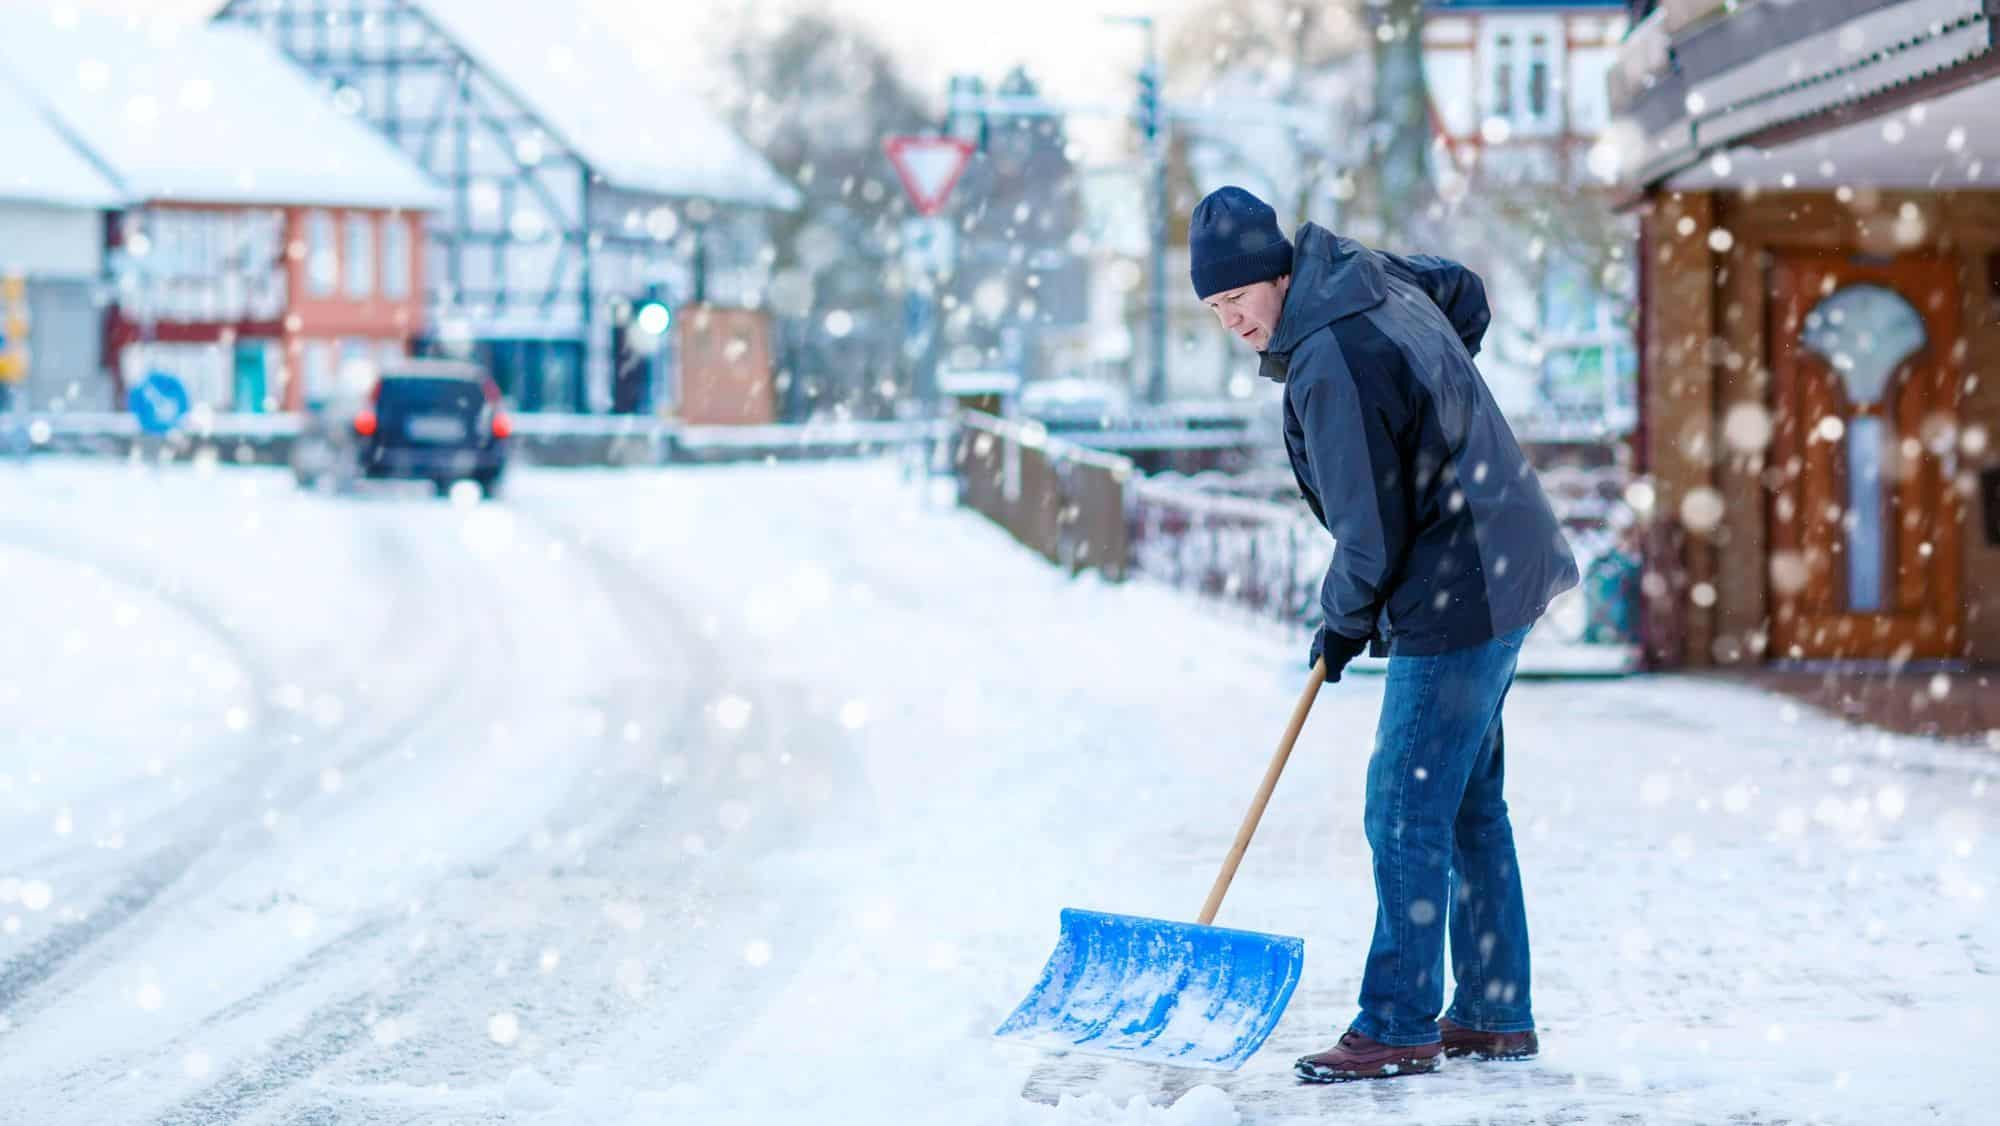 At What Age Should You Stop Shoveling Snow?